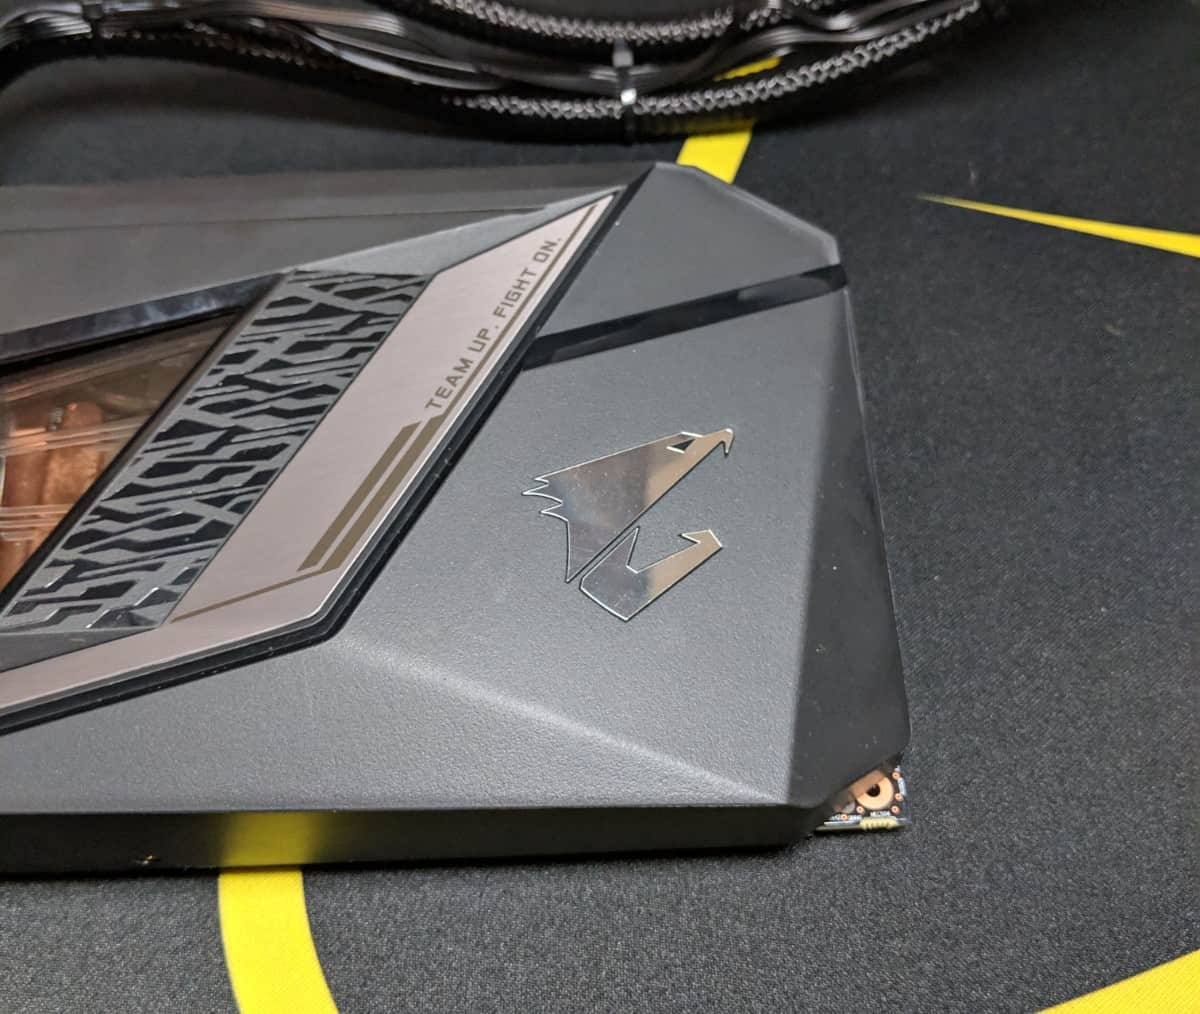 Gigabyte-2080-Xtreme-Waterforce-Photos-37 Gigabyte AORUS RTX 2080 Xtreme Waterforce Review